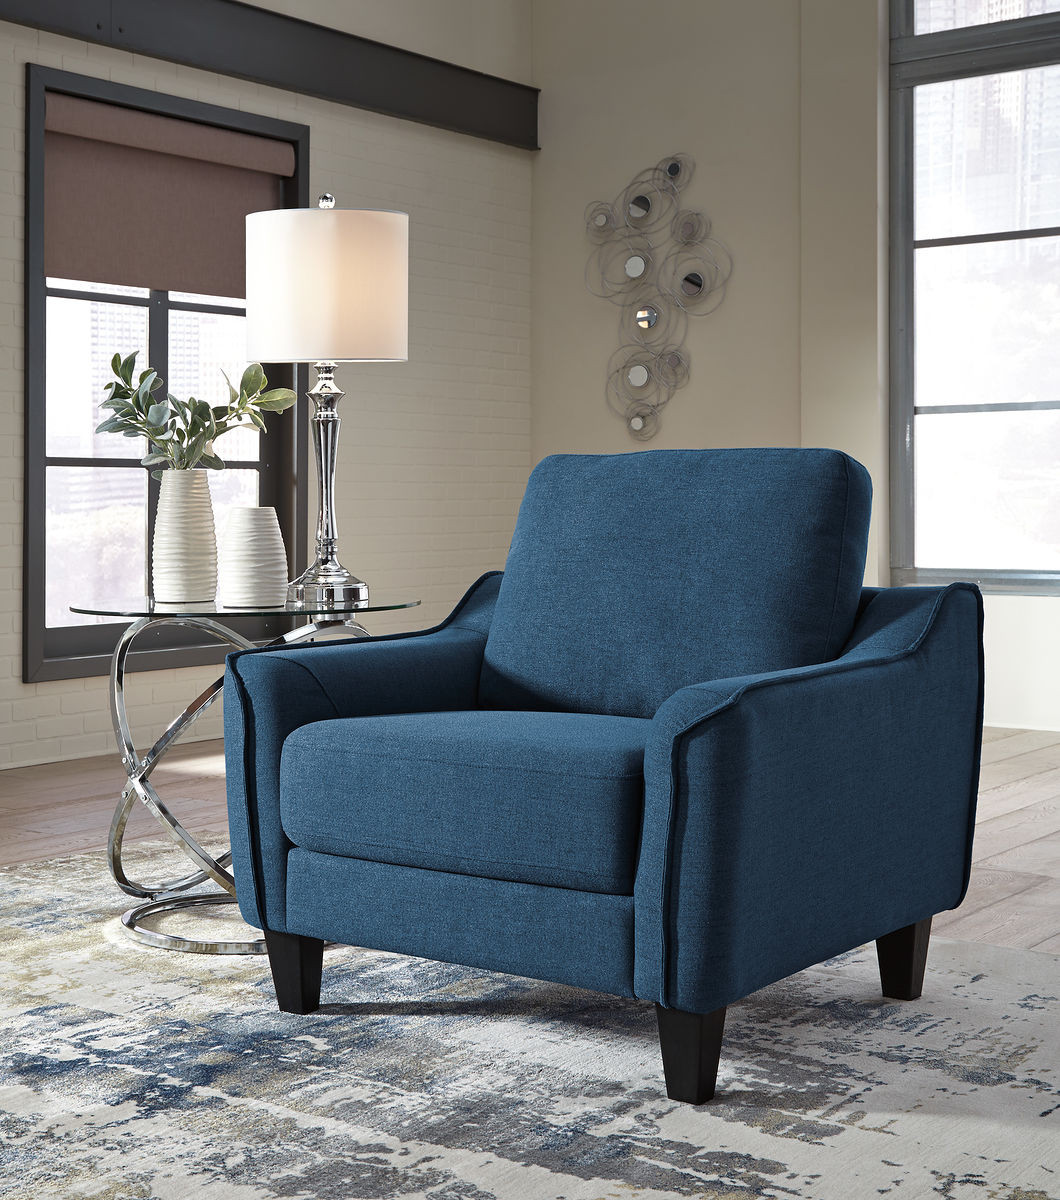 The Jarreau Blue Chair Available At Spokane Furniture Serving